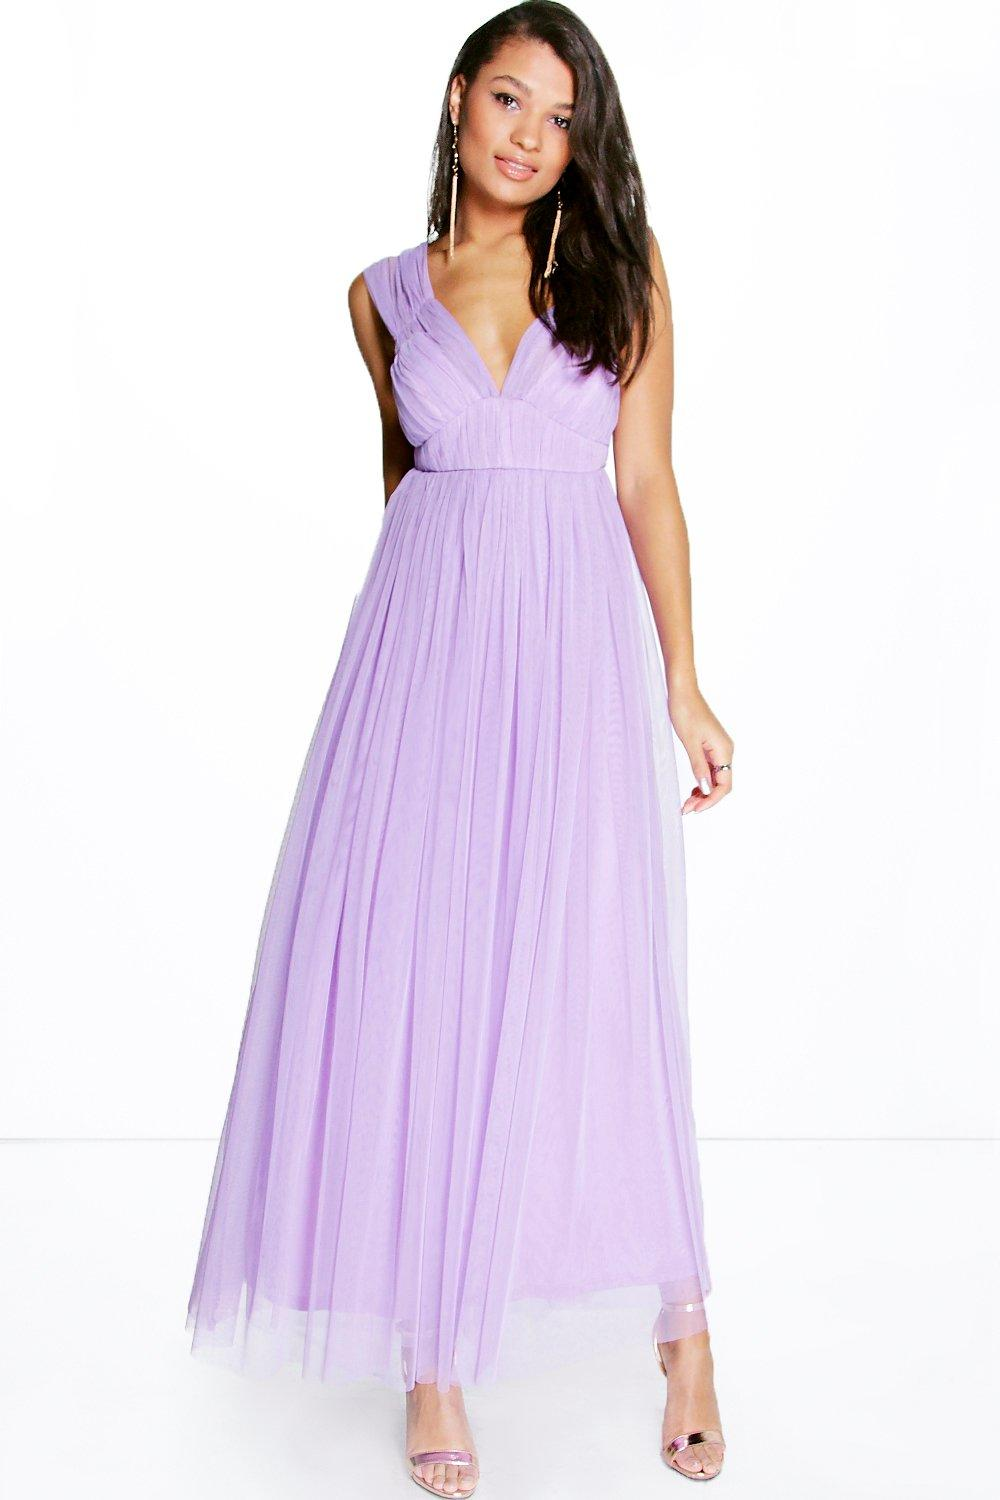 49904a2fa771d Womens Lilac Boutique Anya Seam Detail Tulle Maxi Dress. Hover to zoom